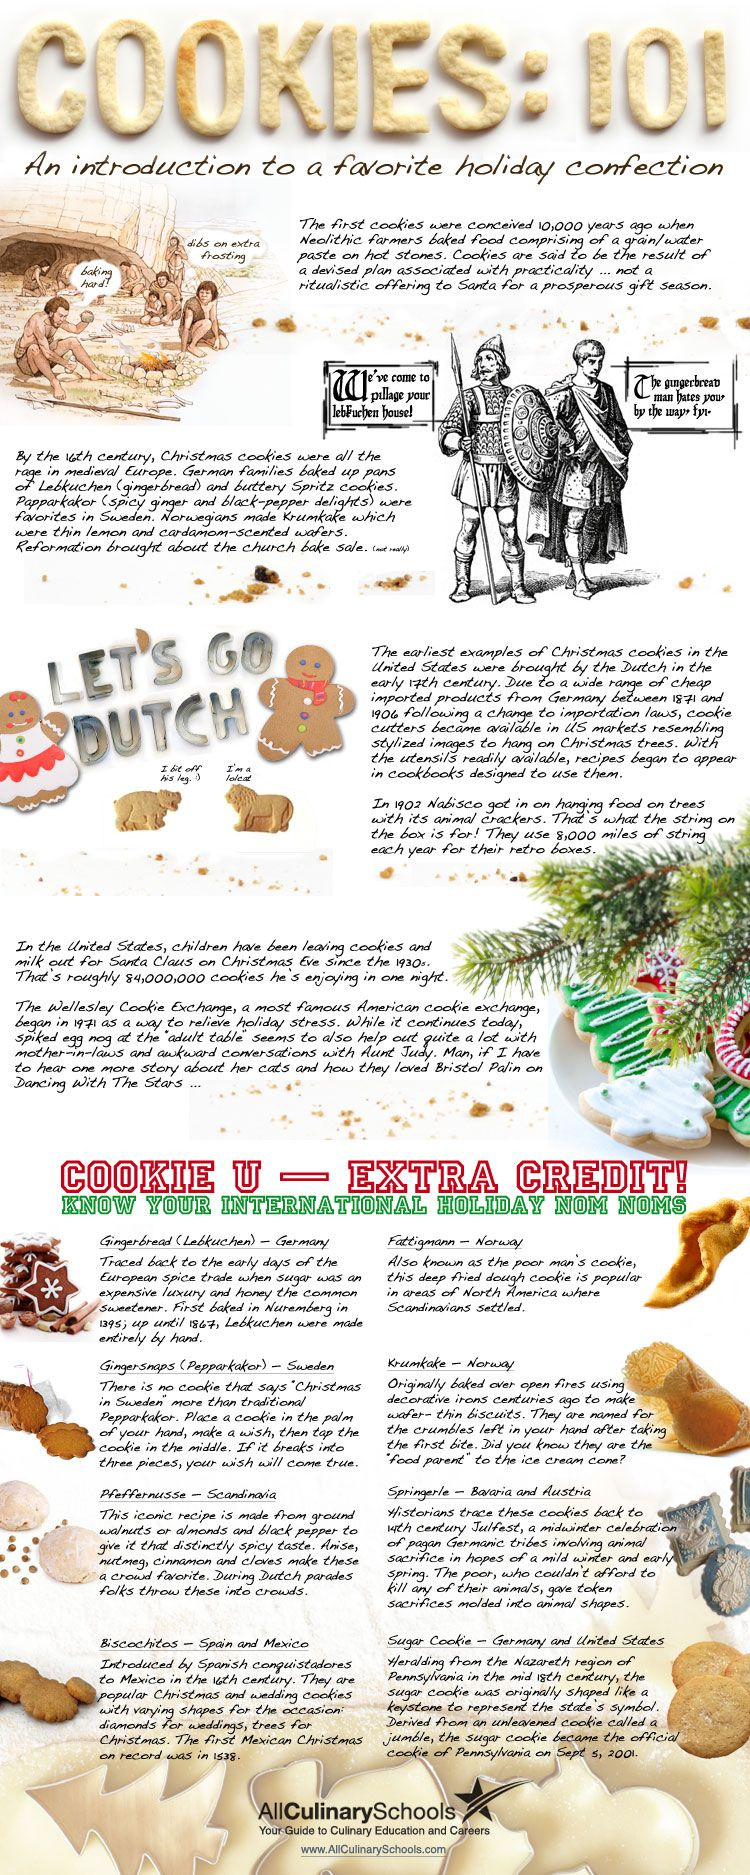 Christmas Cookies A Brief History Of Christmas Cookies Christmas Cookies Christmas Fun Facts Christmas Infographic